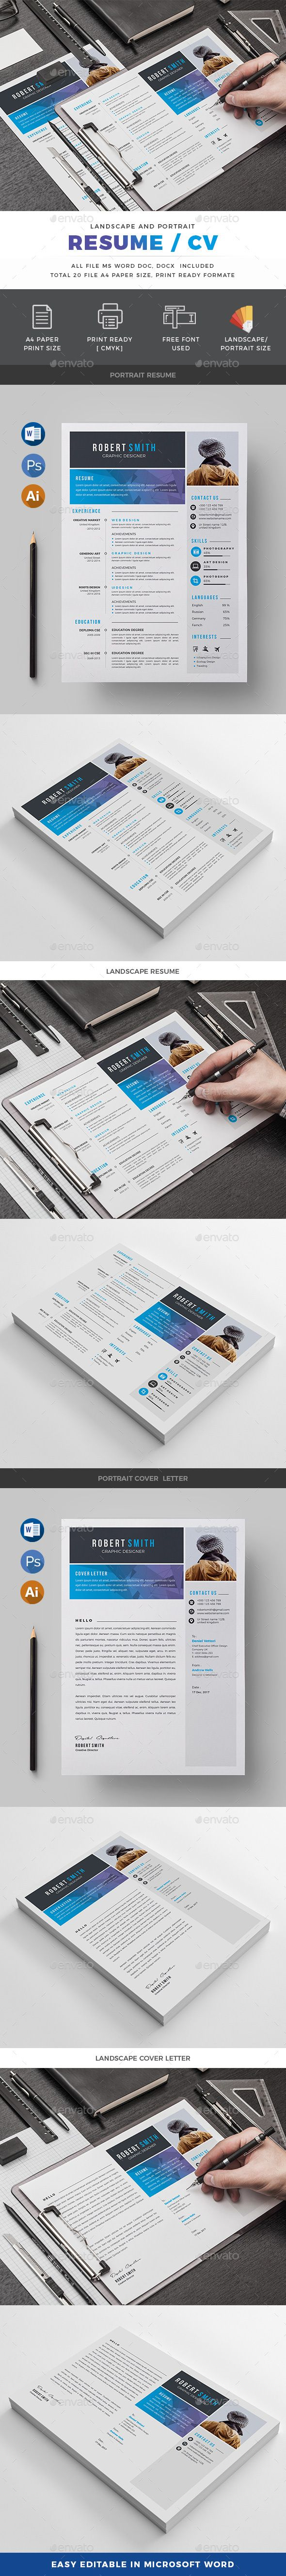 Resume/CV | Resume cv, Template and Cv template